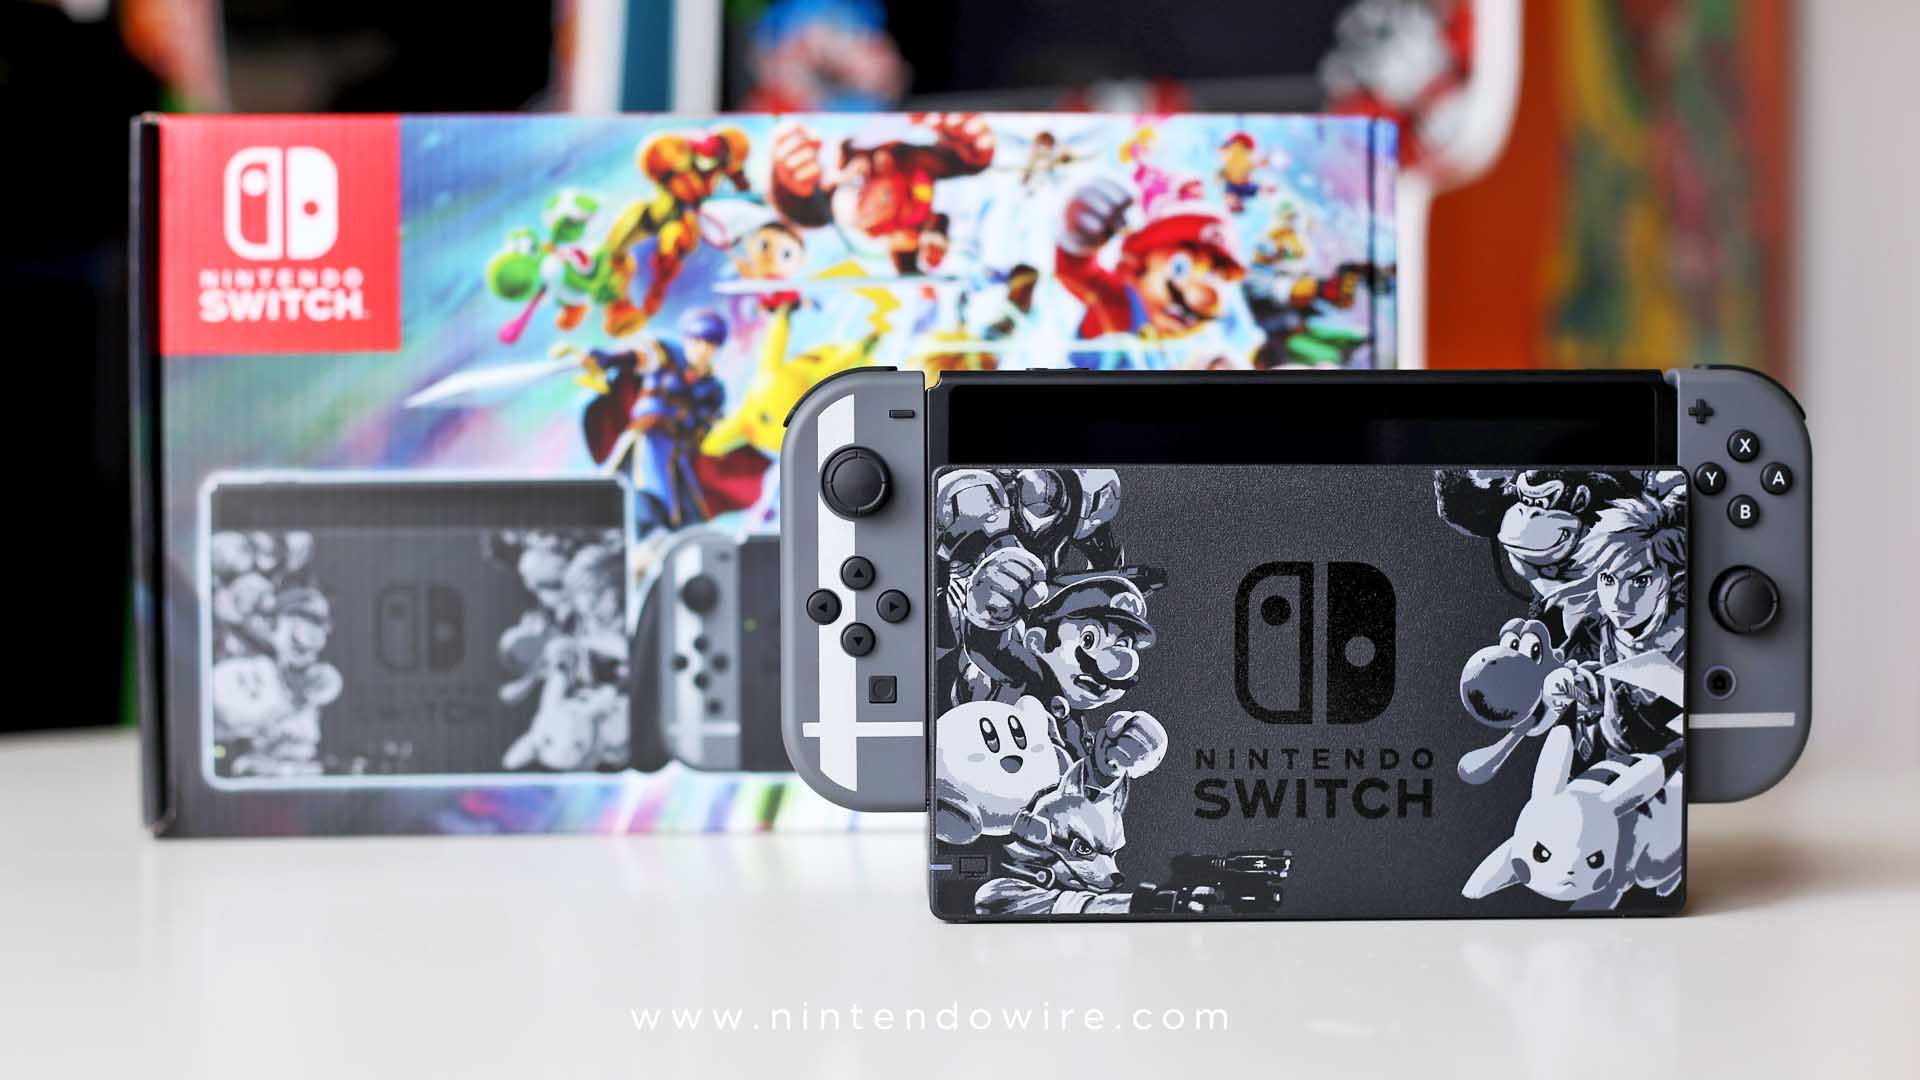 Nice Nintendo Wire Photos Direct Wallpapers Wallpaper 64 Av Cable Wiring Diagram Unboxing Super Smash Bros Ultimate Switch Bundle